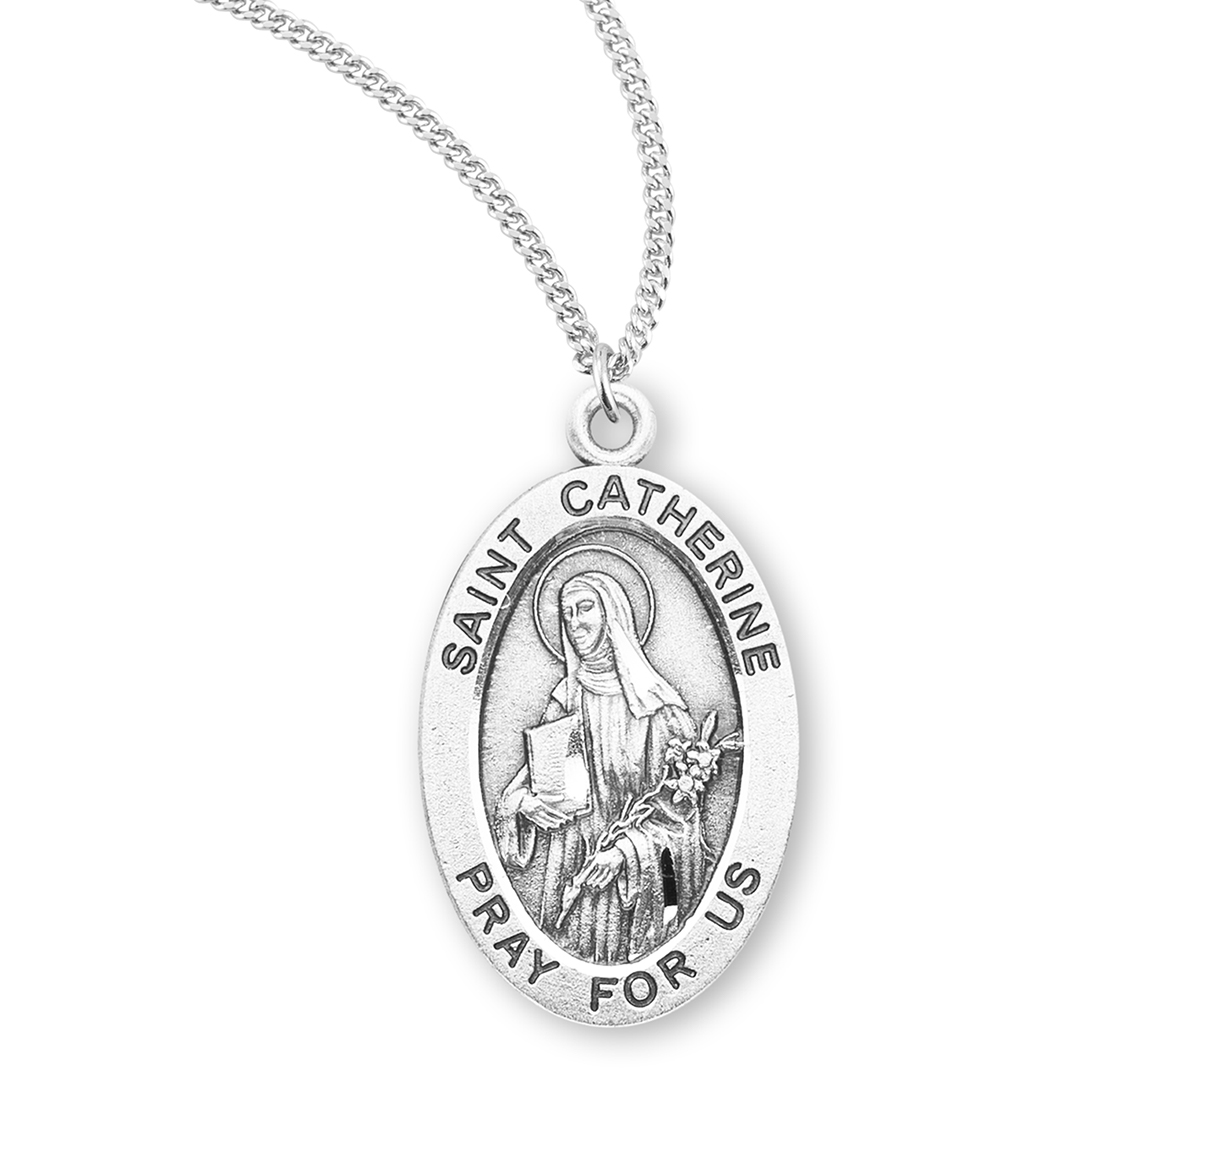 925 Sterling Silver Dog Tag Saint Michael Pendant Charm Necklace Religious Patron Medal St Fine Jewelry Gifts For Women For Her